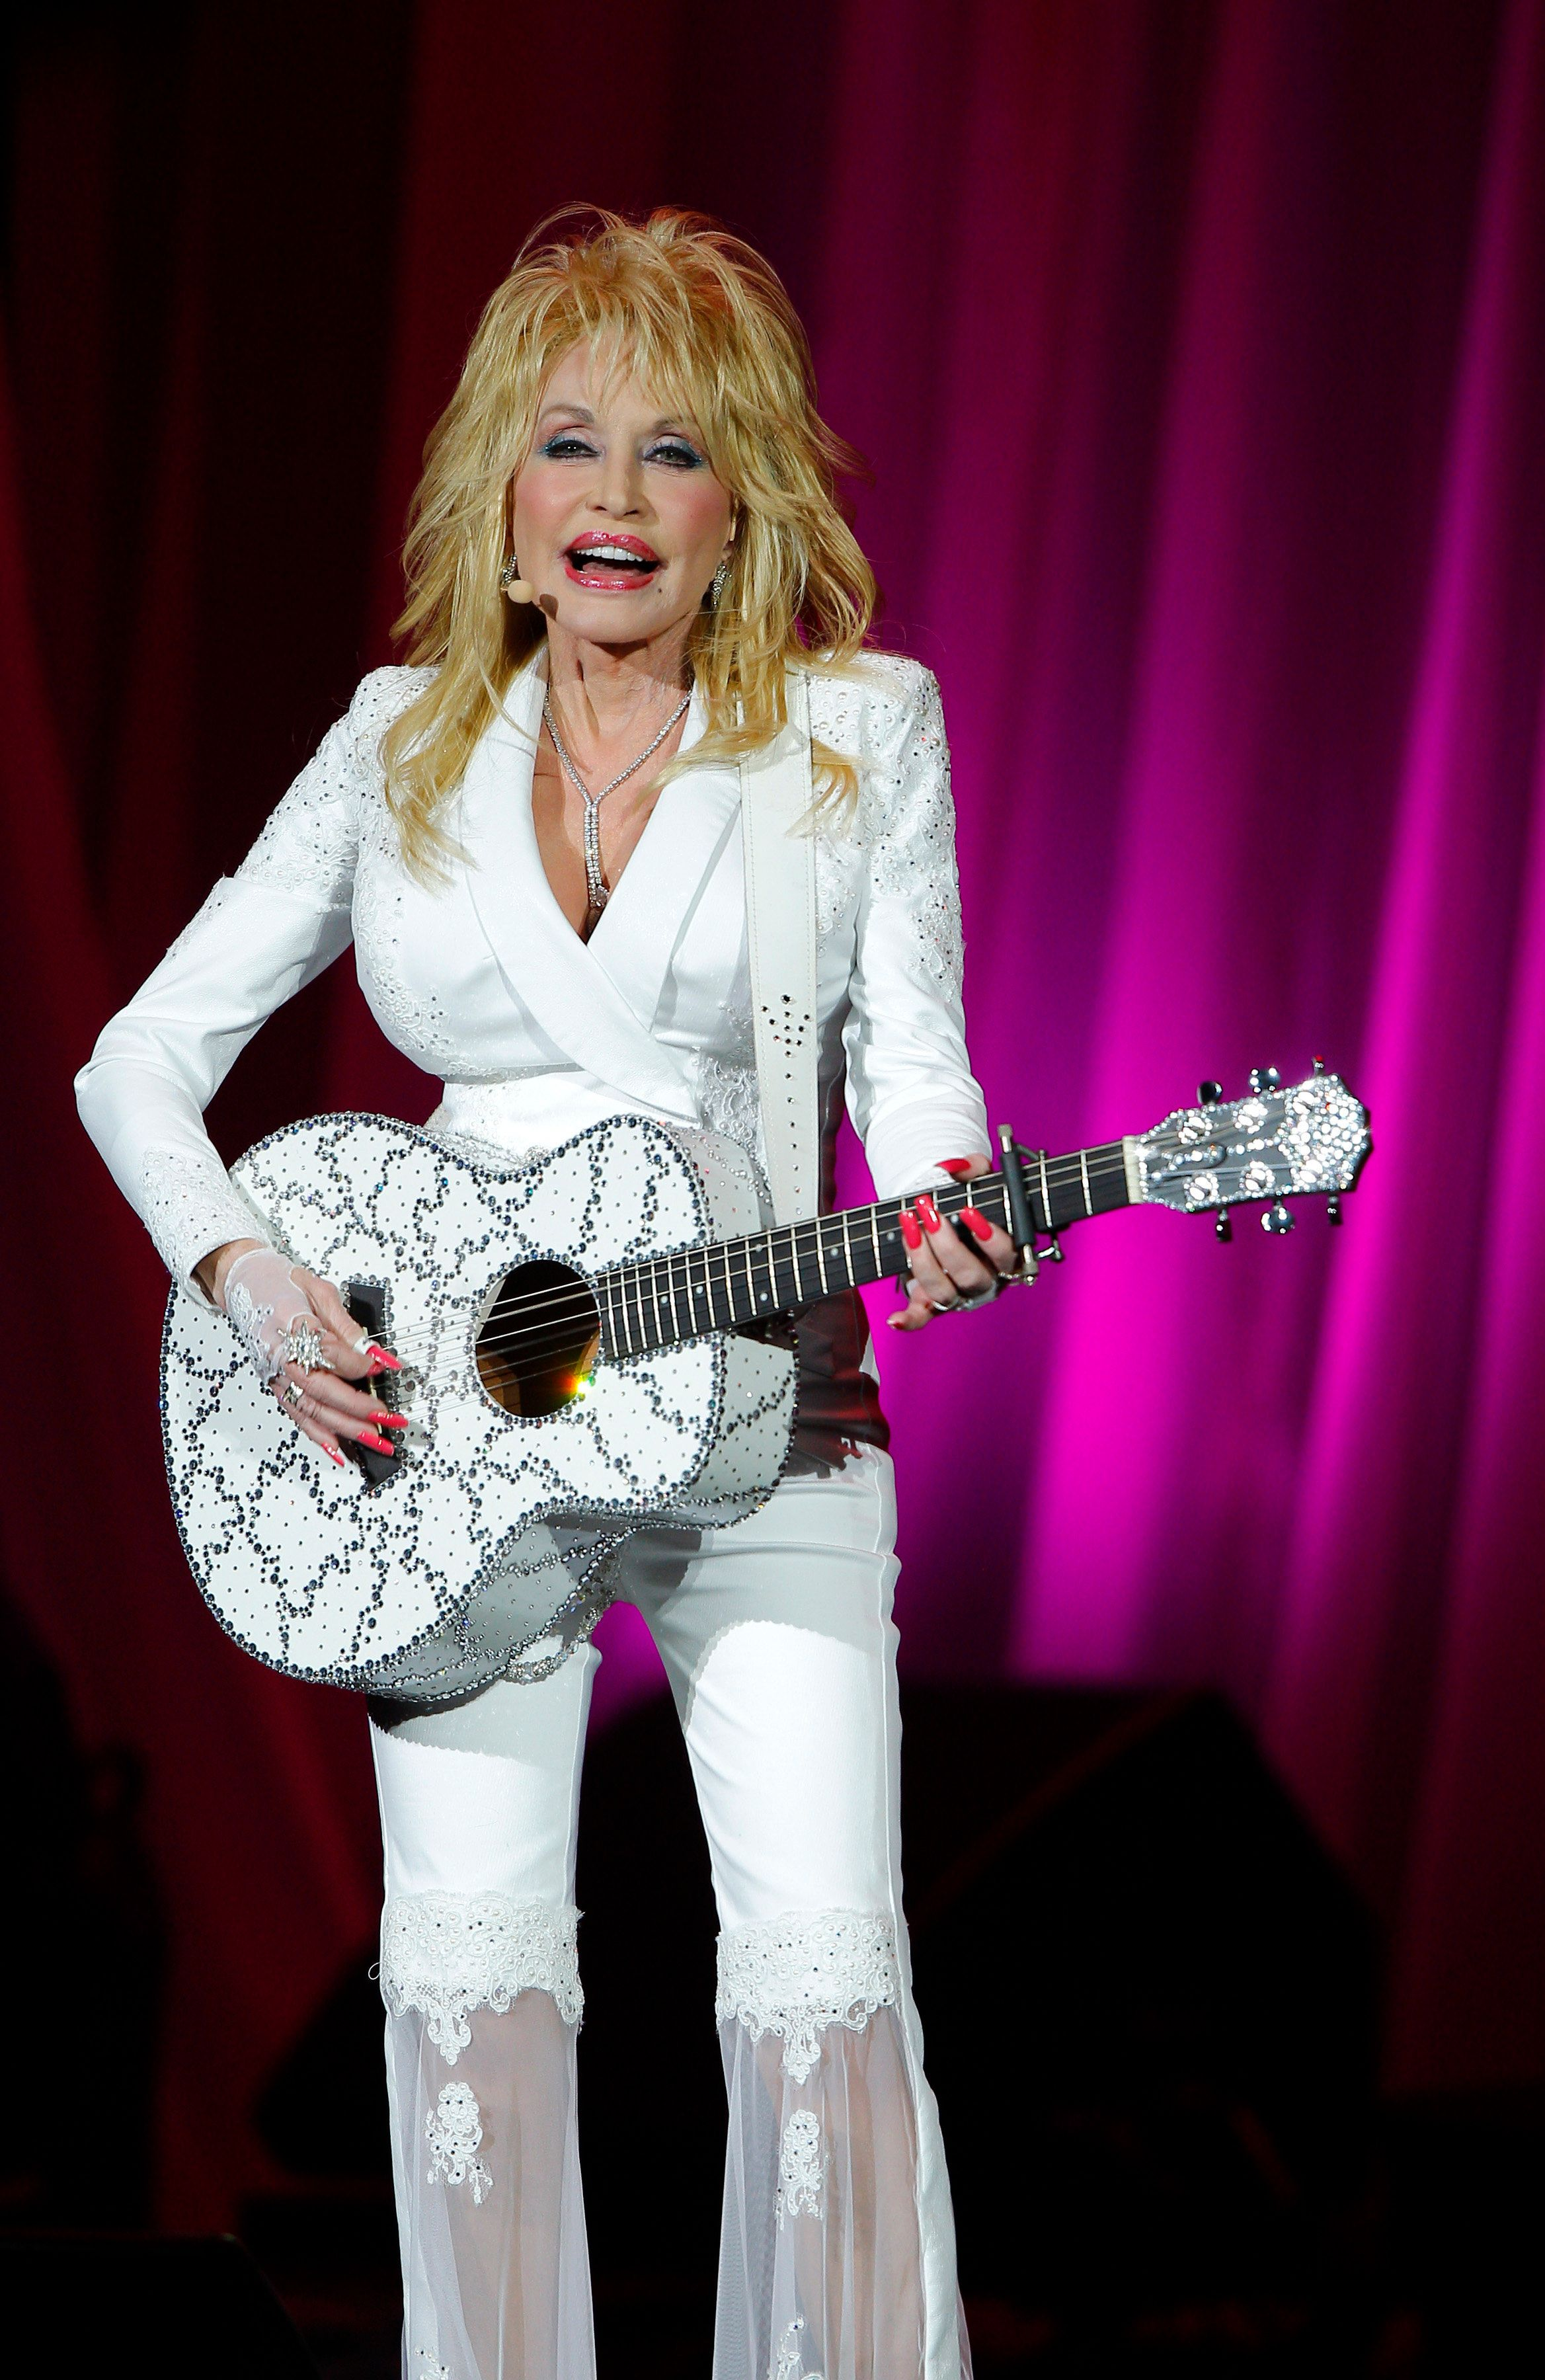 Dolly Parton performs in concert at the Ryman Auditorium on Friday, July 31, 2015 in Nashville, Tenn. (Photo by Wade Payne/Invision/AP)